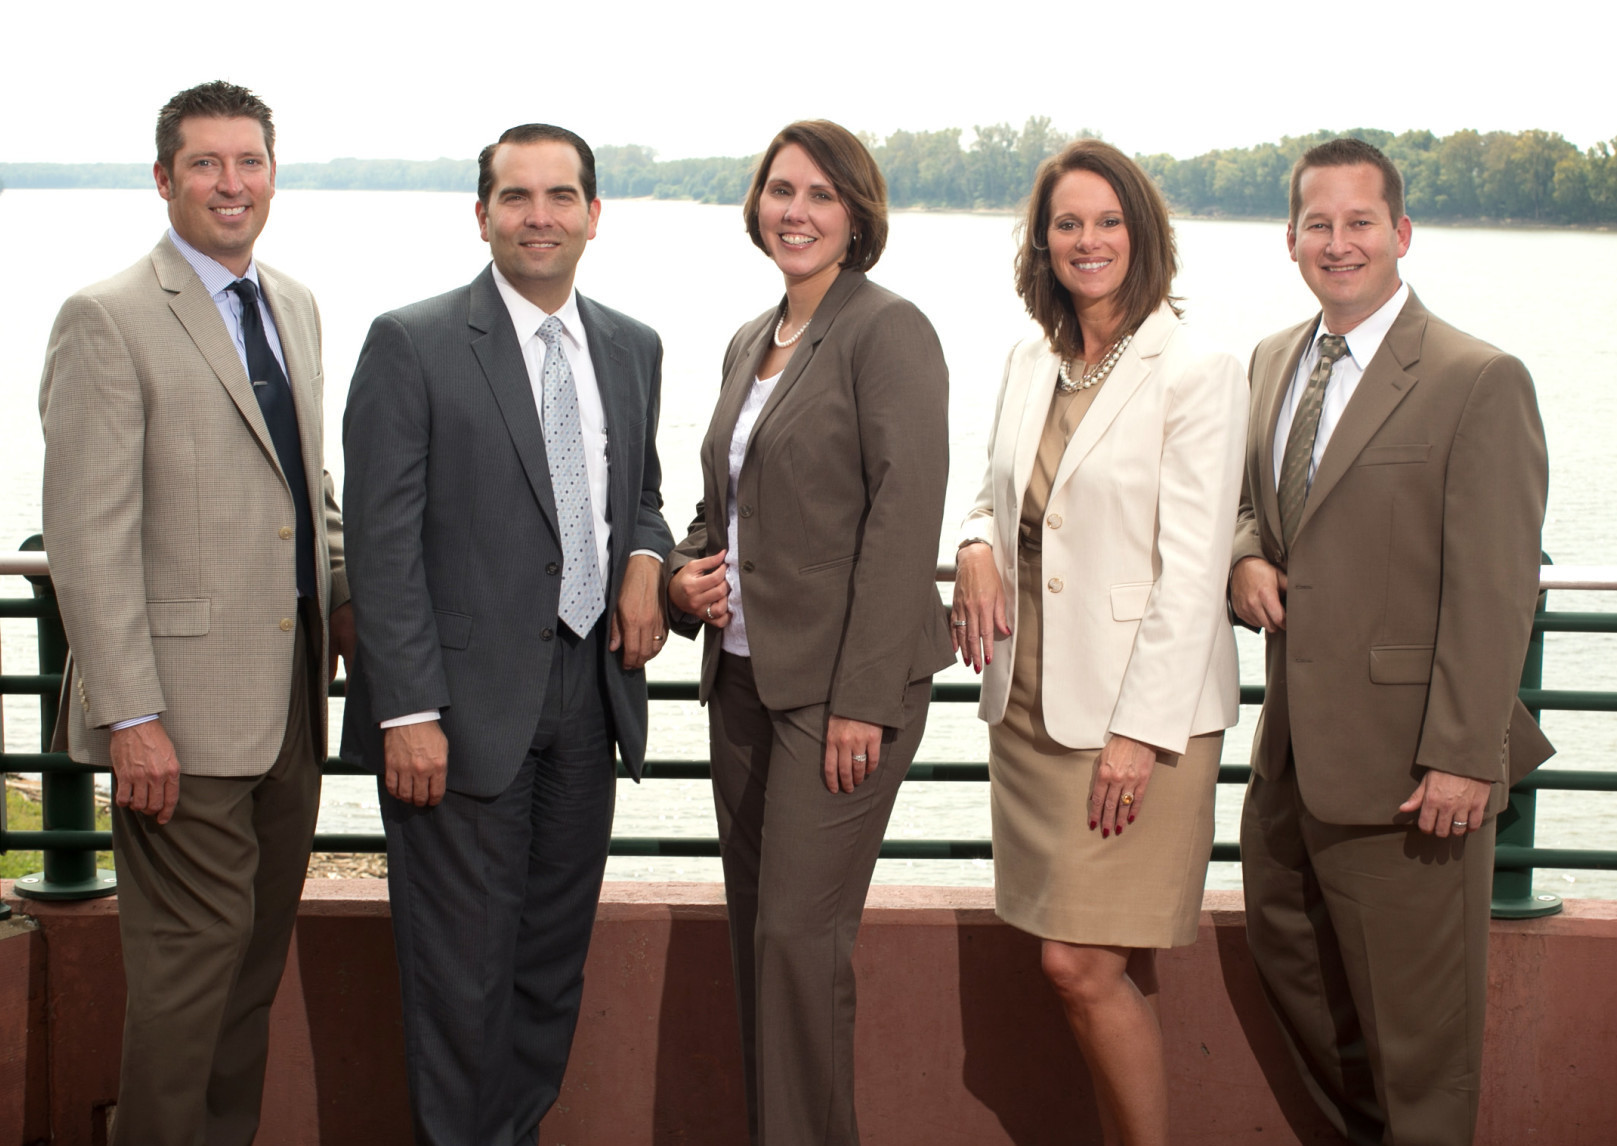 Management team members Paul Esche, Scott Olinger, Michele Graham, Lisa Frank, and Kyle Wininger